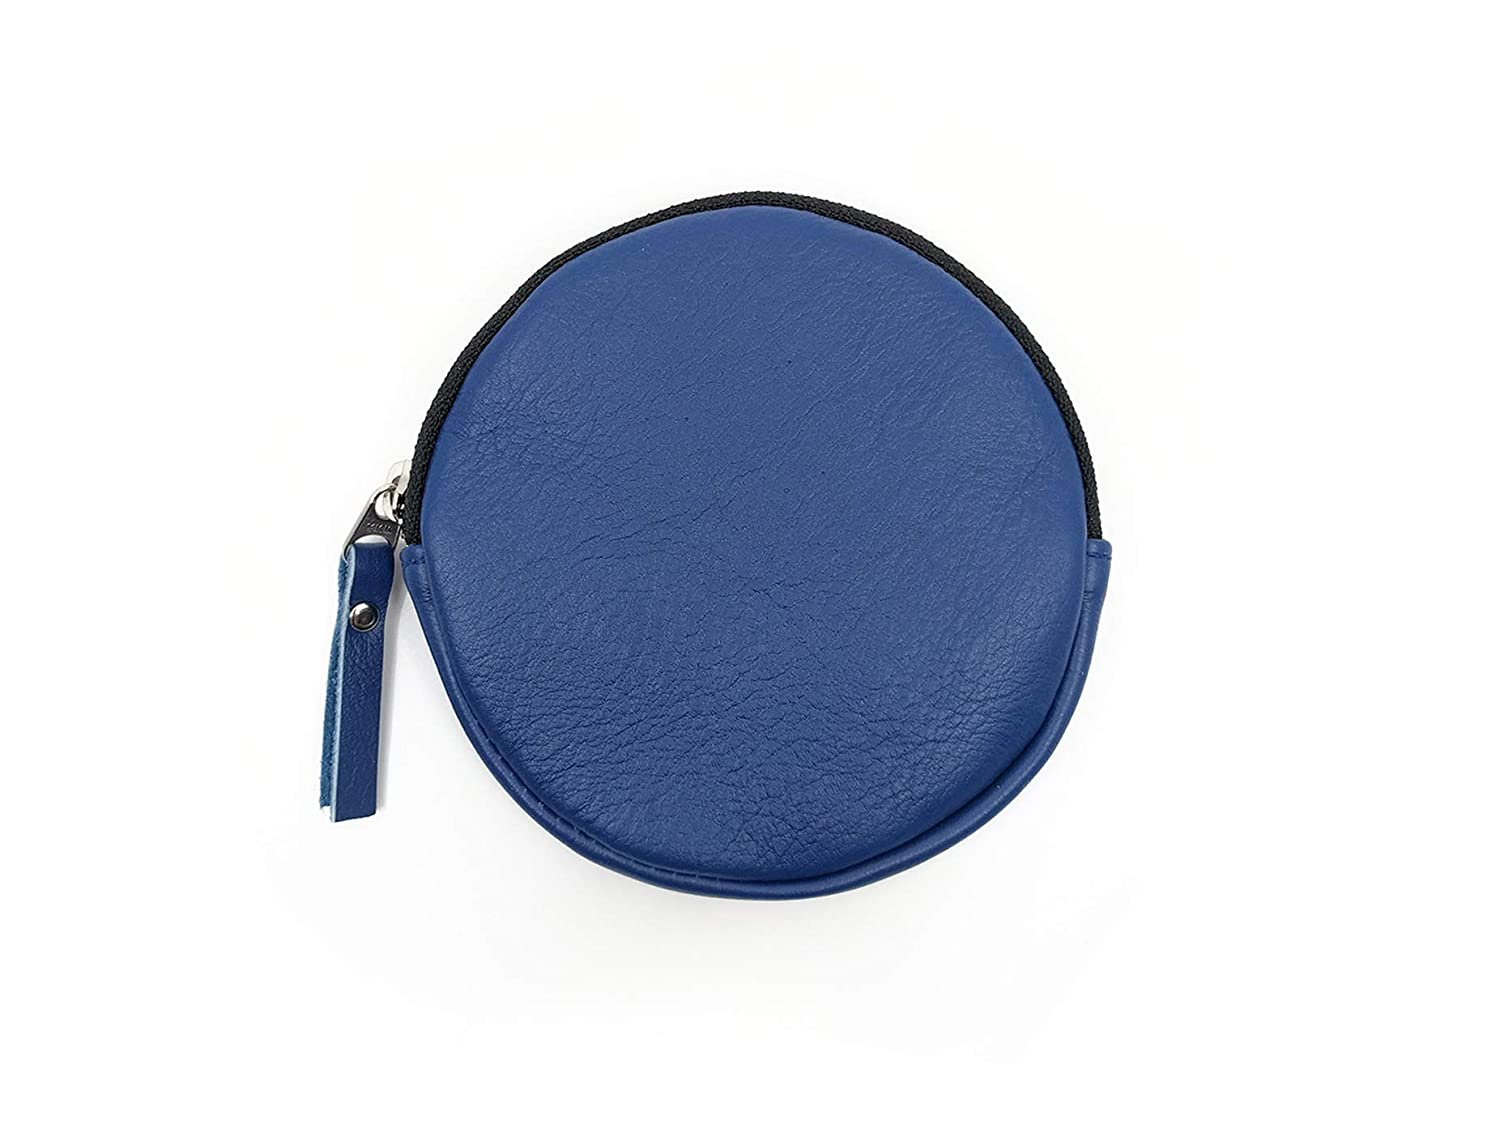 BLUE LEATHER ROUND COIN PURSE CLUTCH